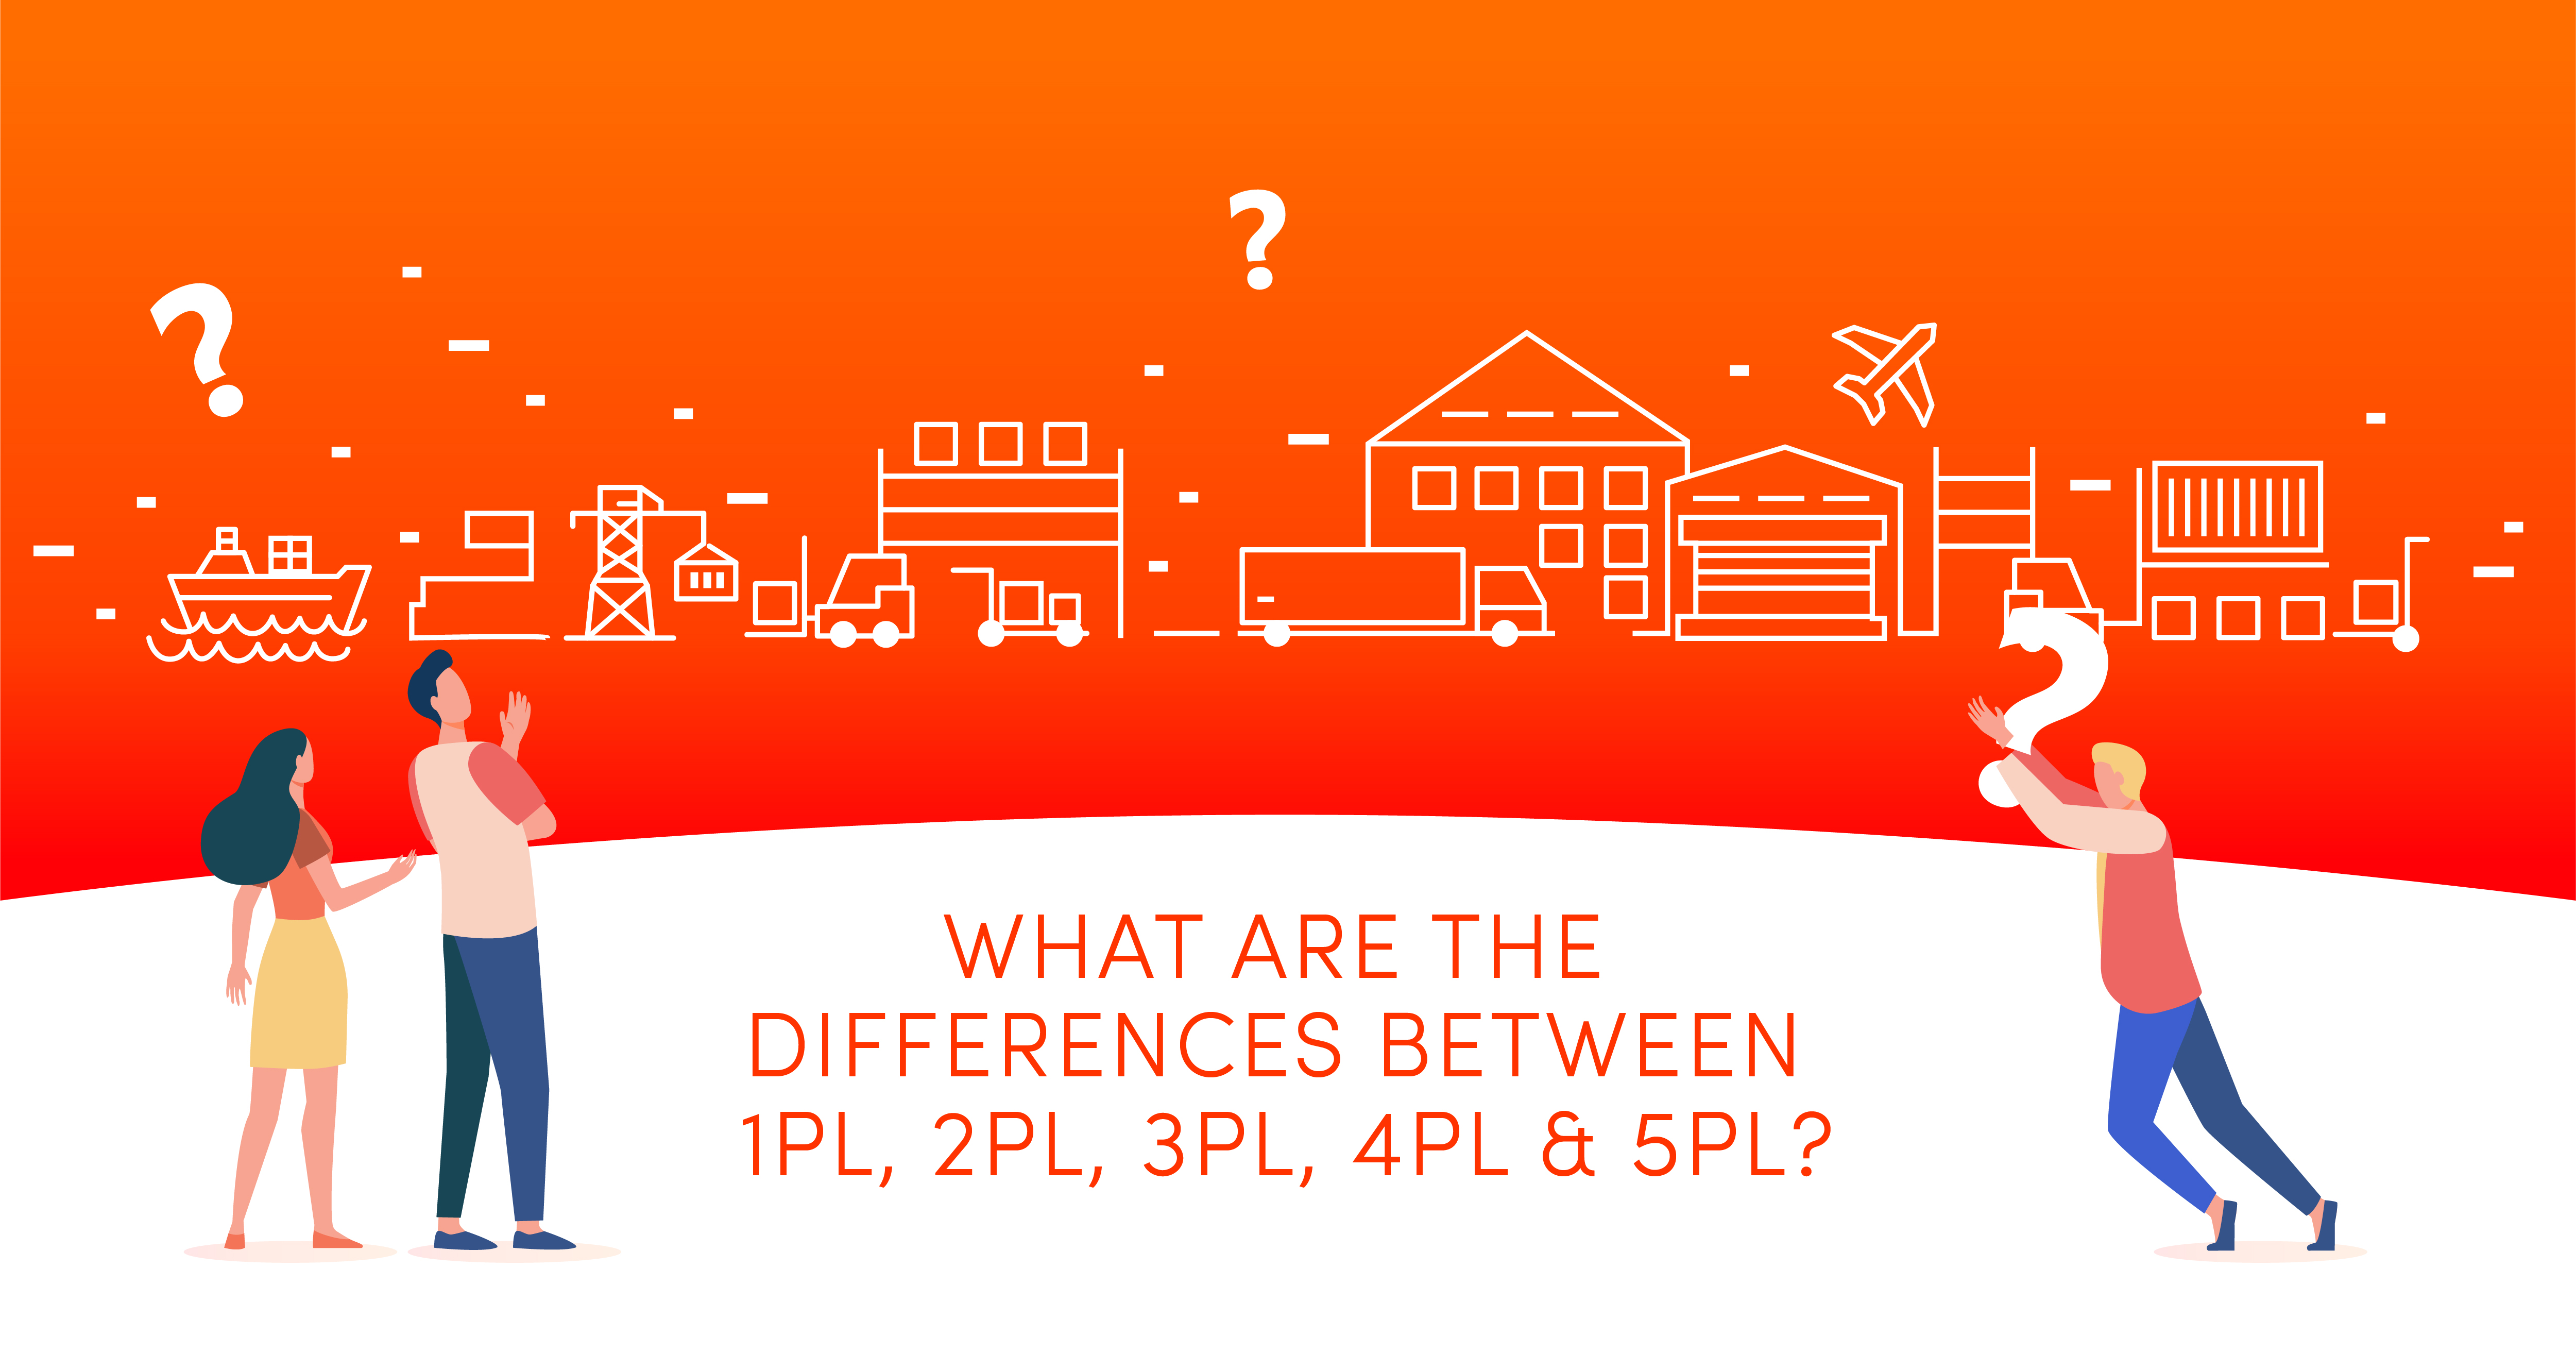 What Are The Differences Between 1, 2, 3, 4, 5 PLs?